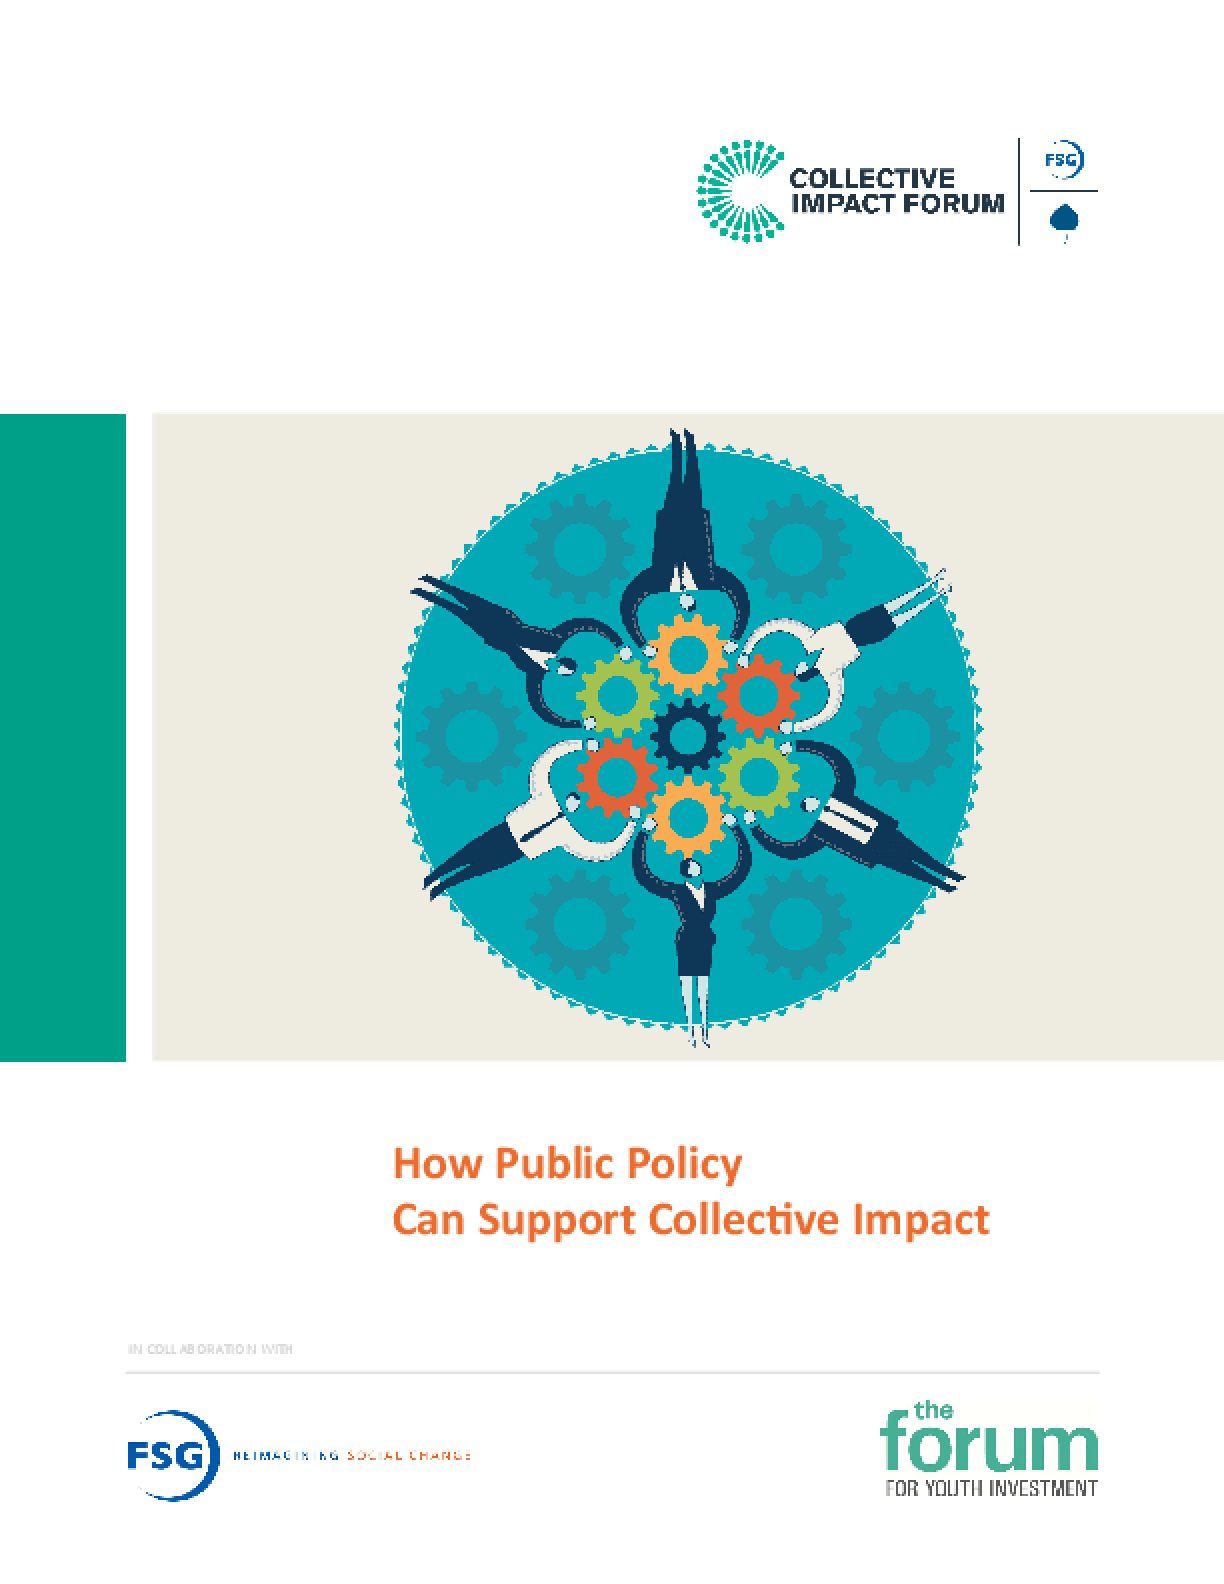 How Public Policy Can Support Collective Impact